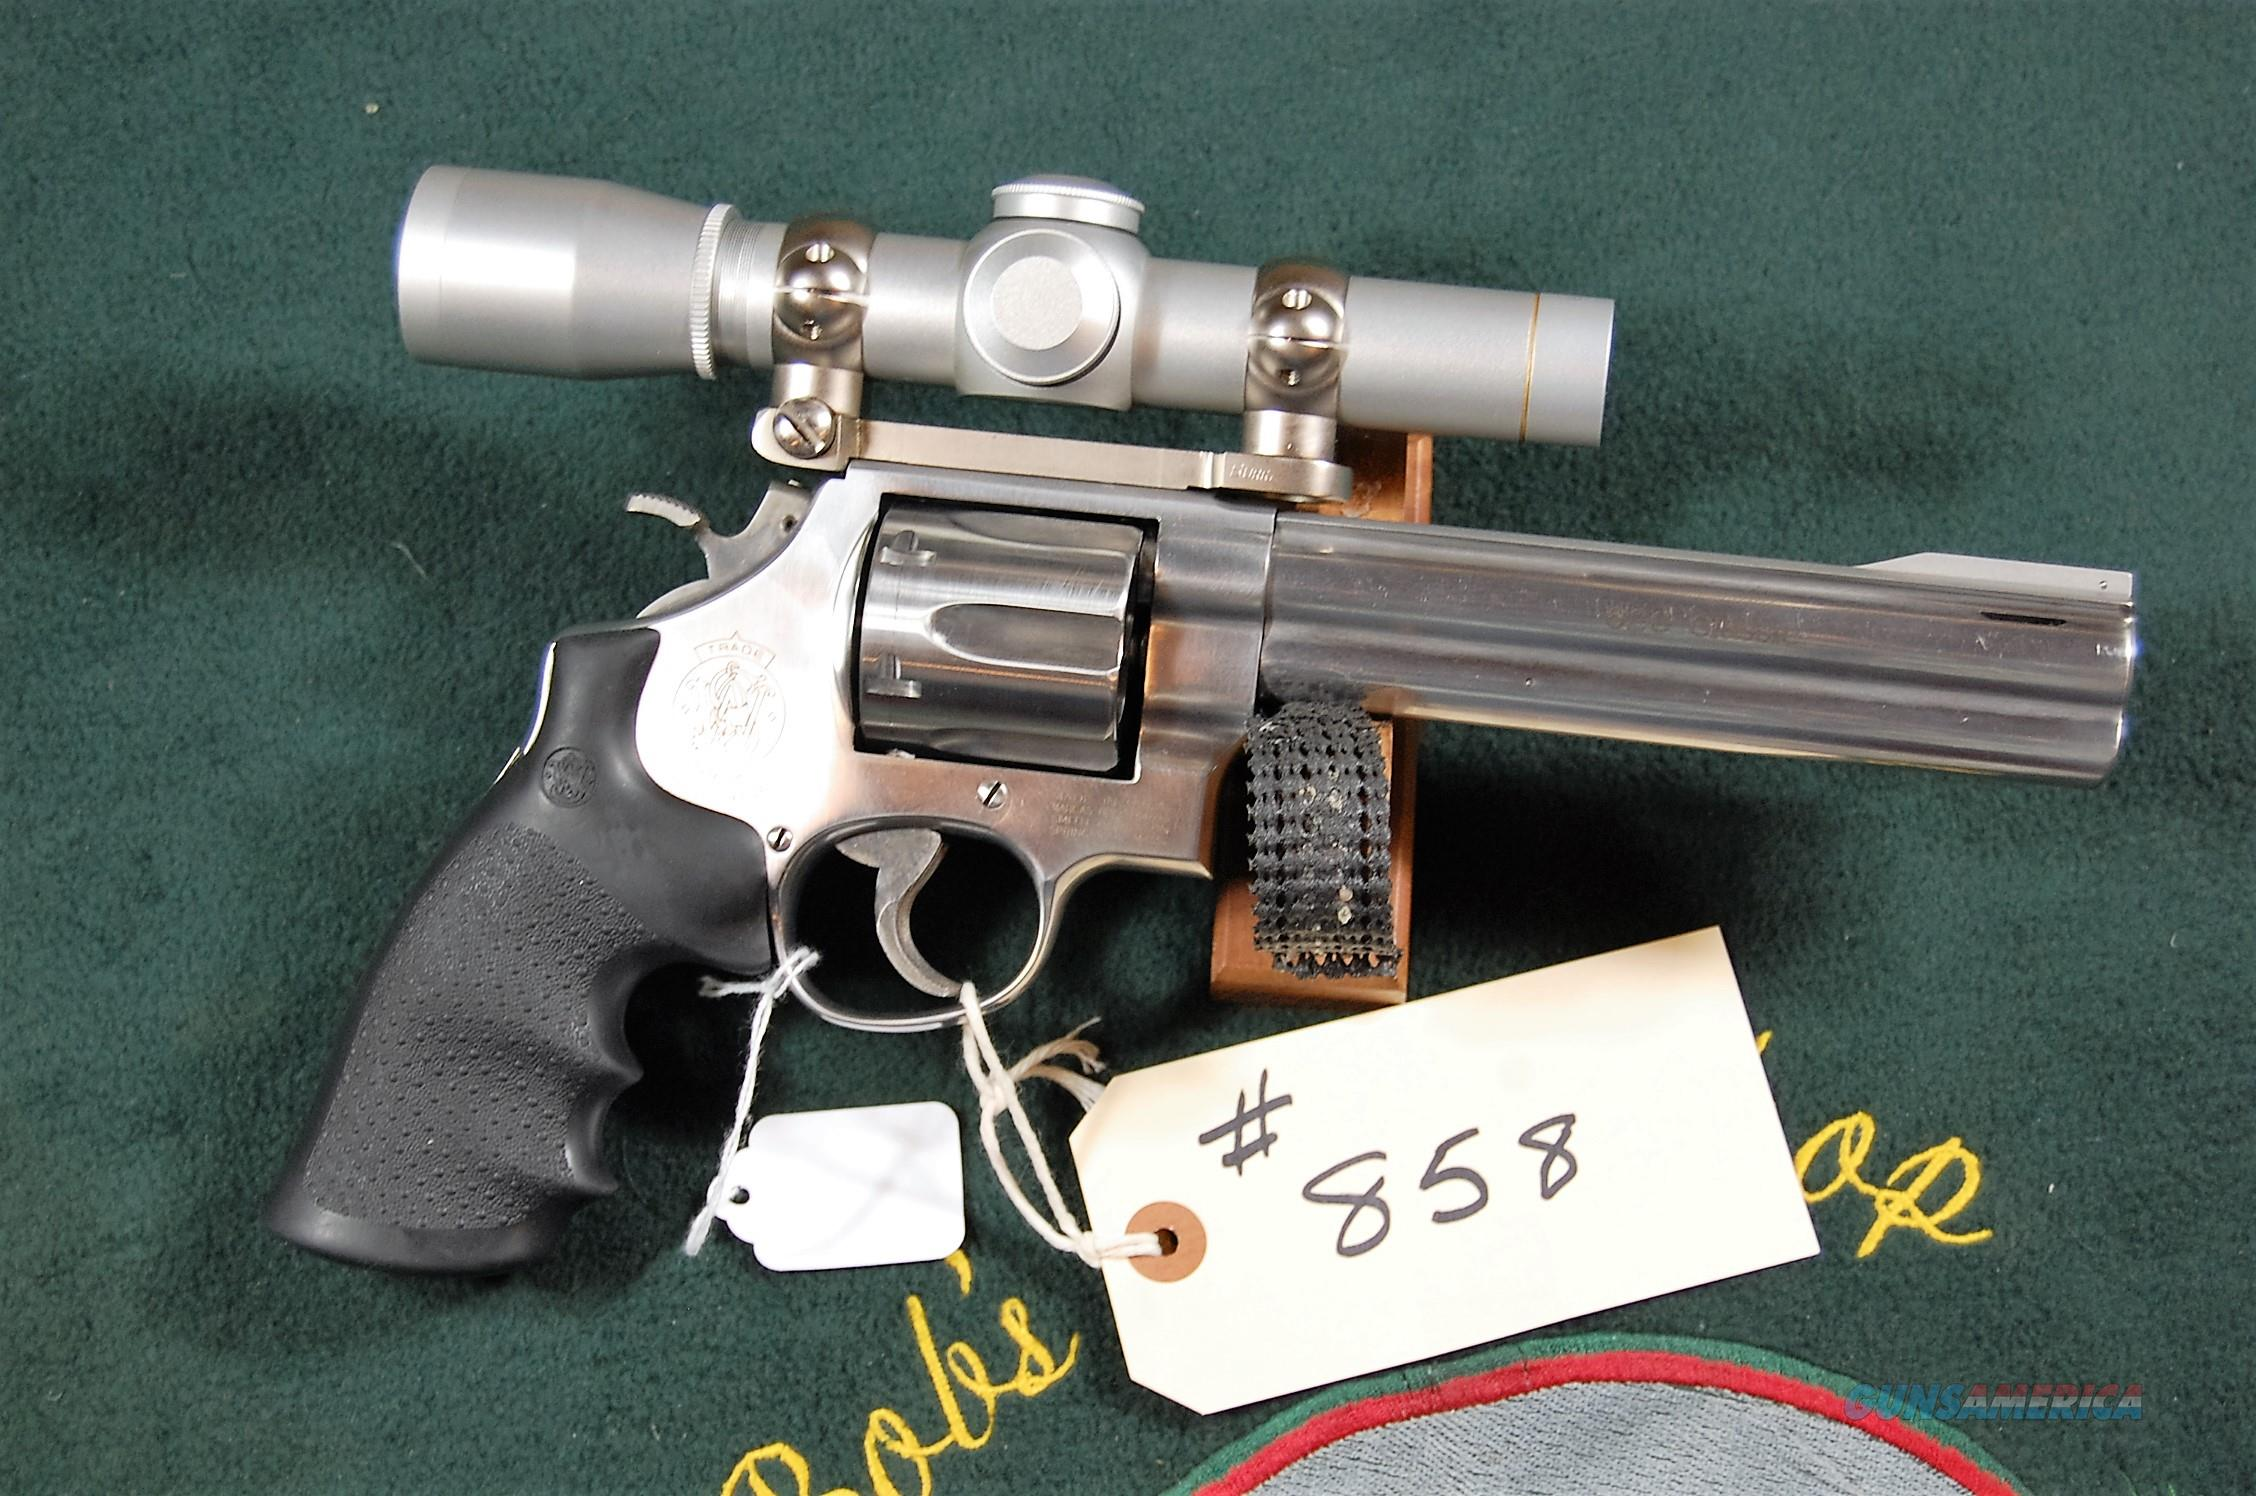 Smith&Wesson 629-4  Guns > Pistols > Smith & Wesson Revolvers > Model 629